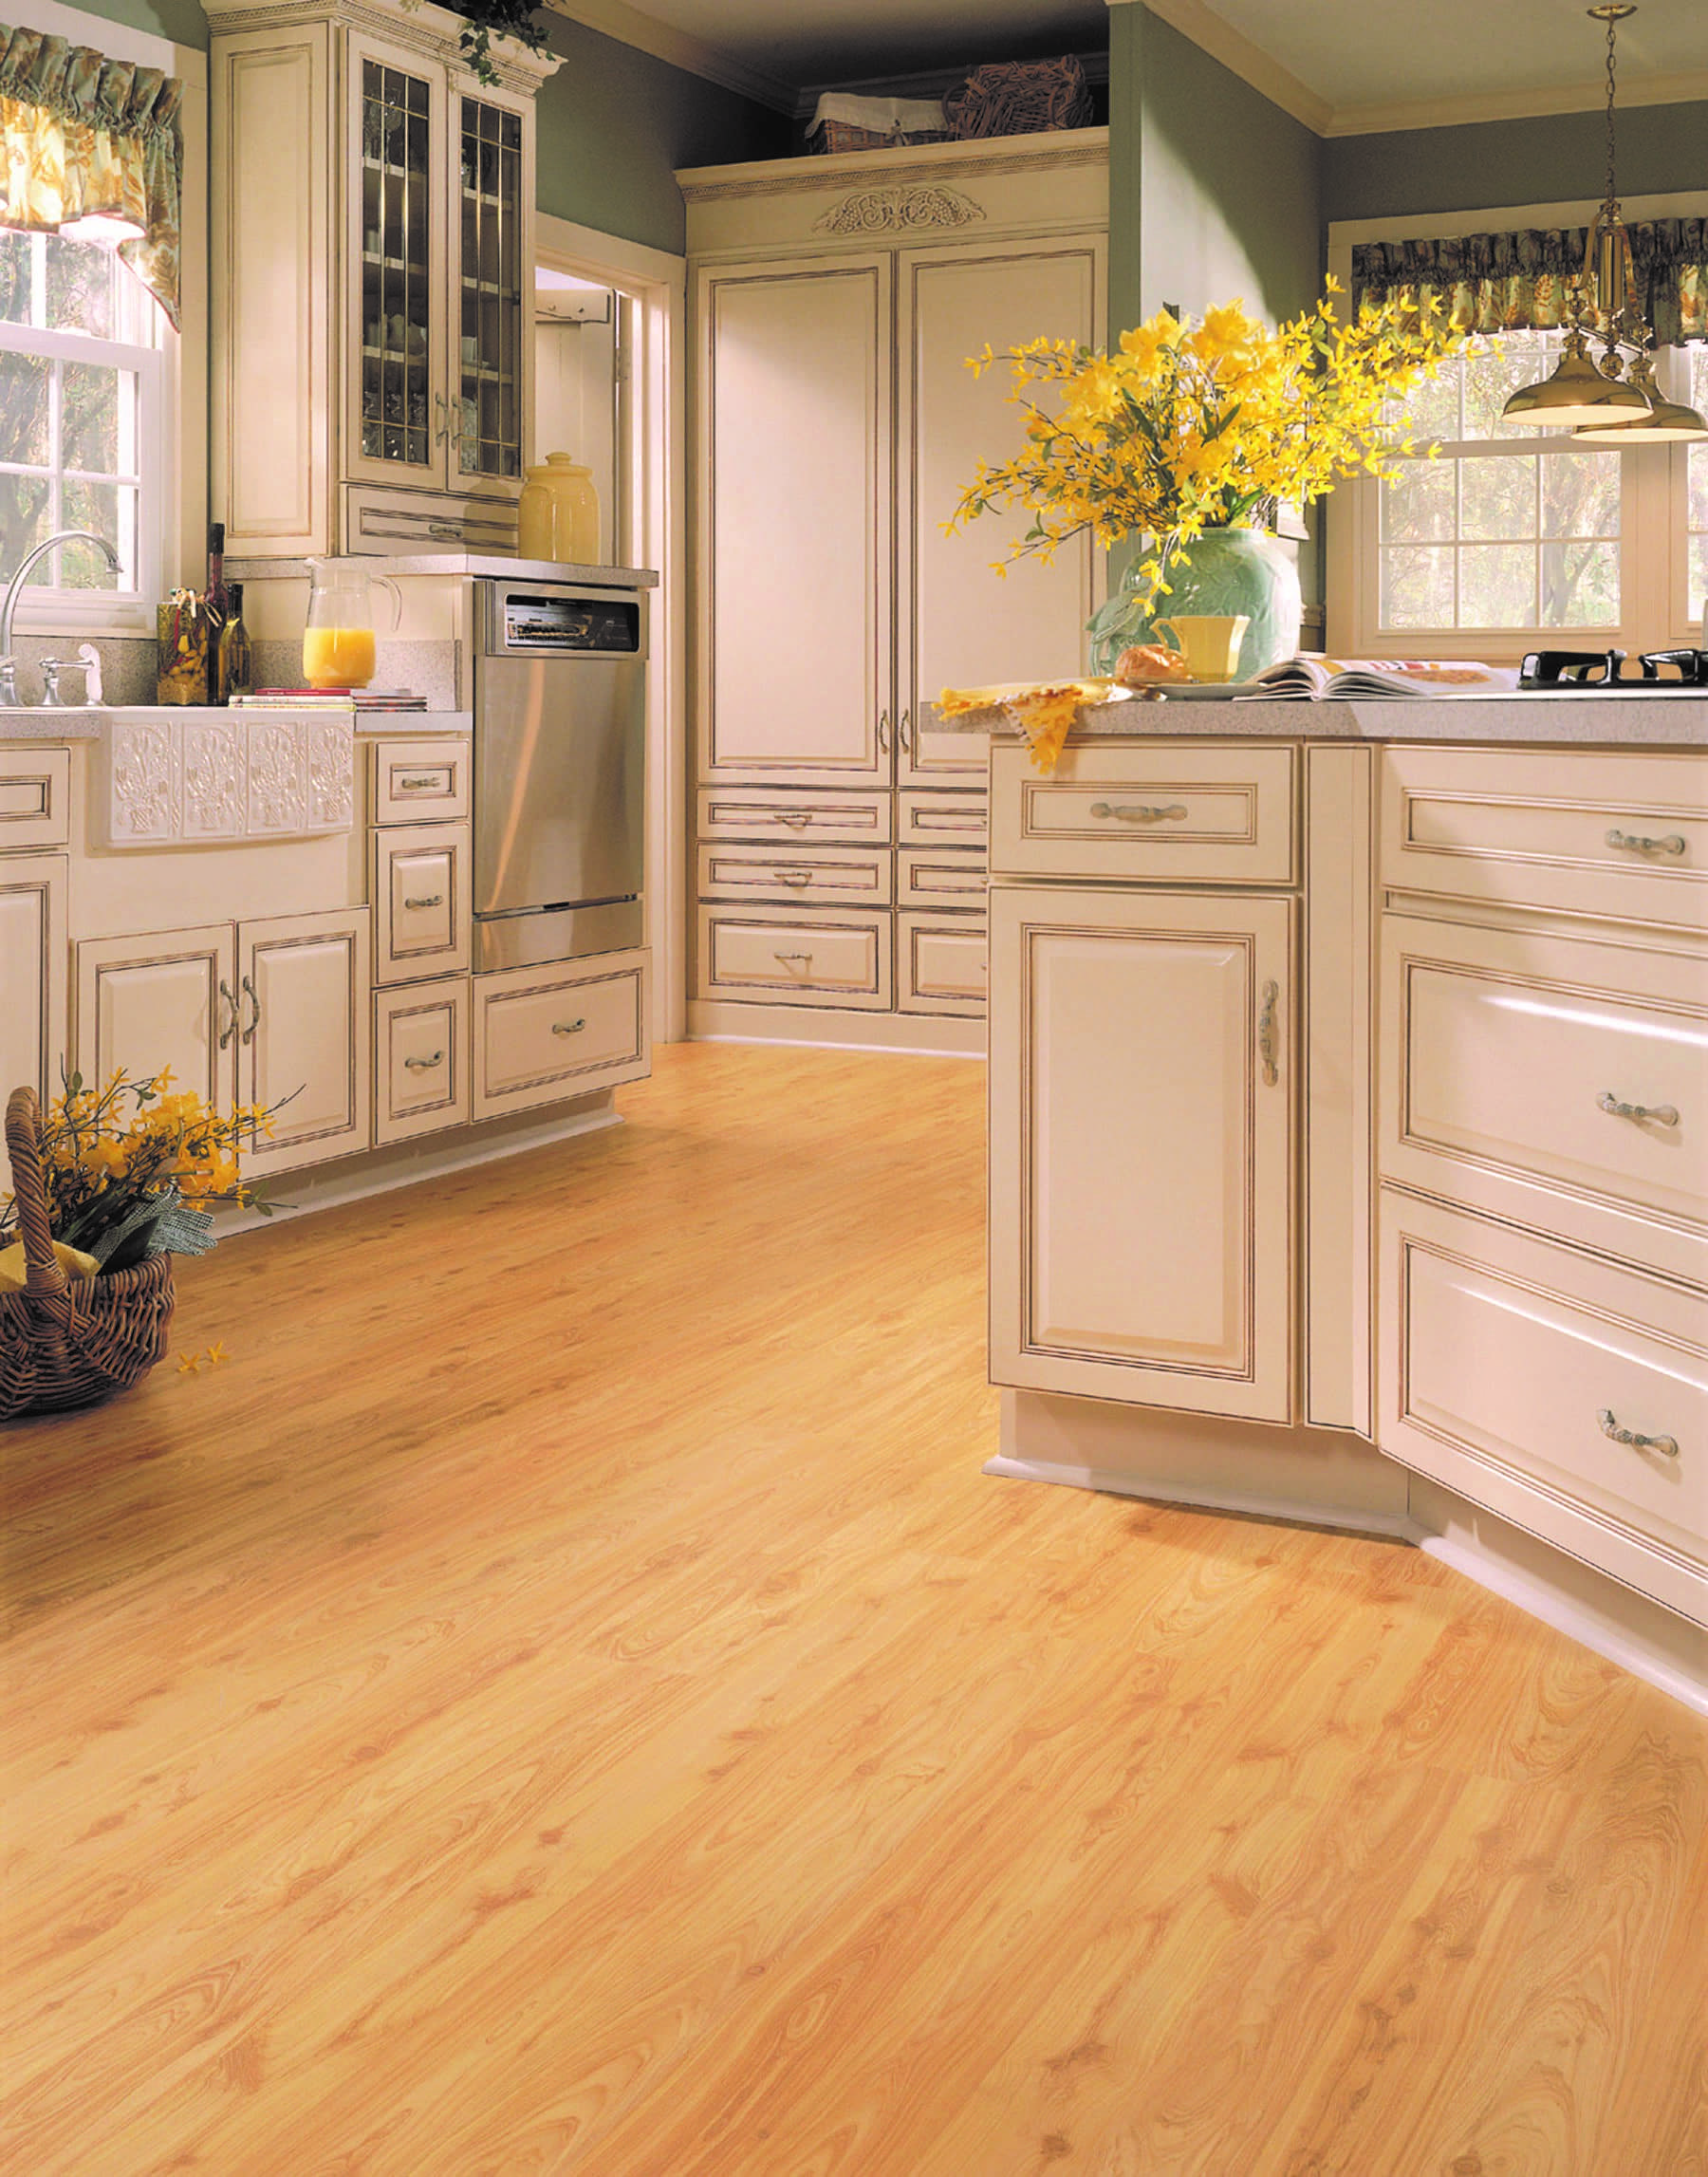 By Observing The Following Laminate Floor Care Maintenance Precautions You Can Expect Years Of Beauty From Your Laminate Floor